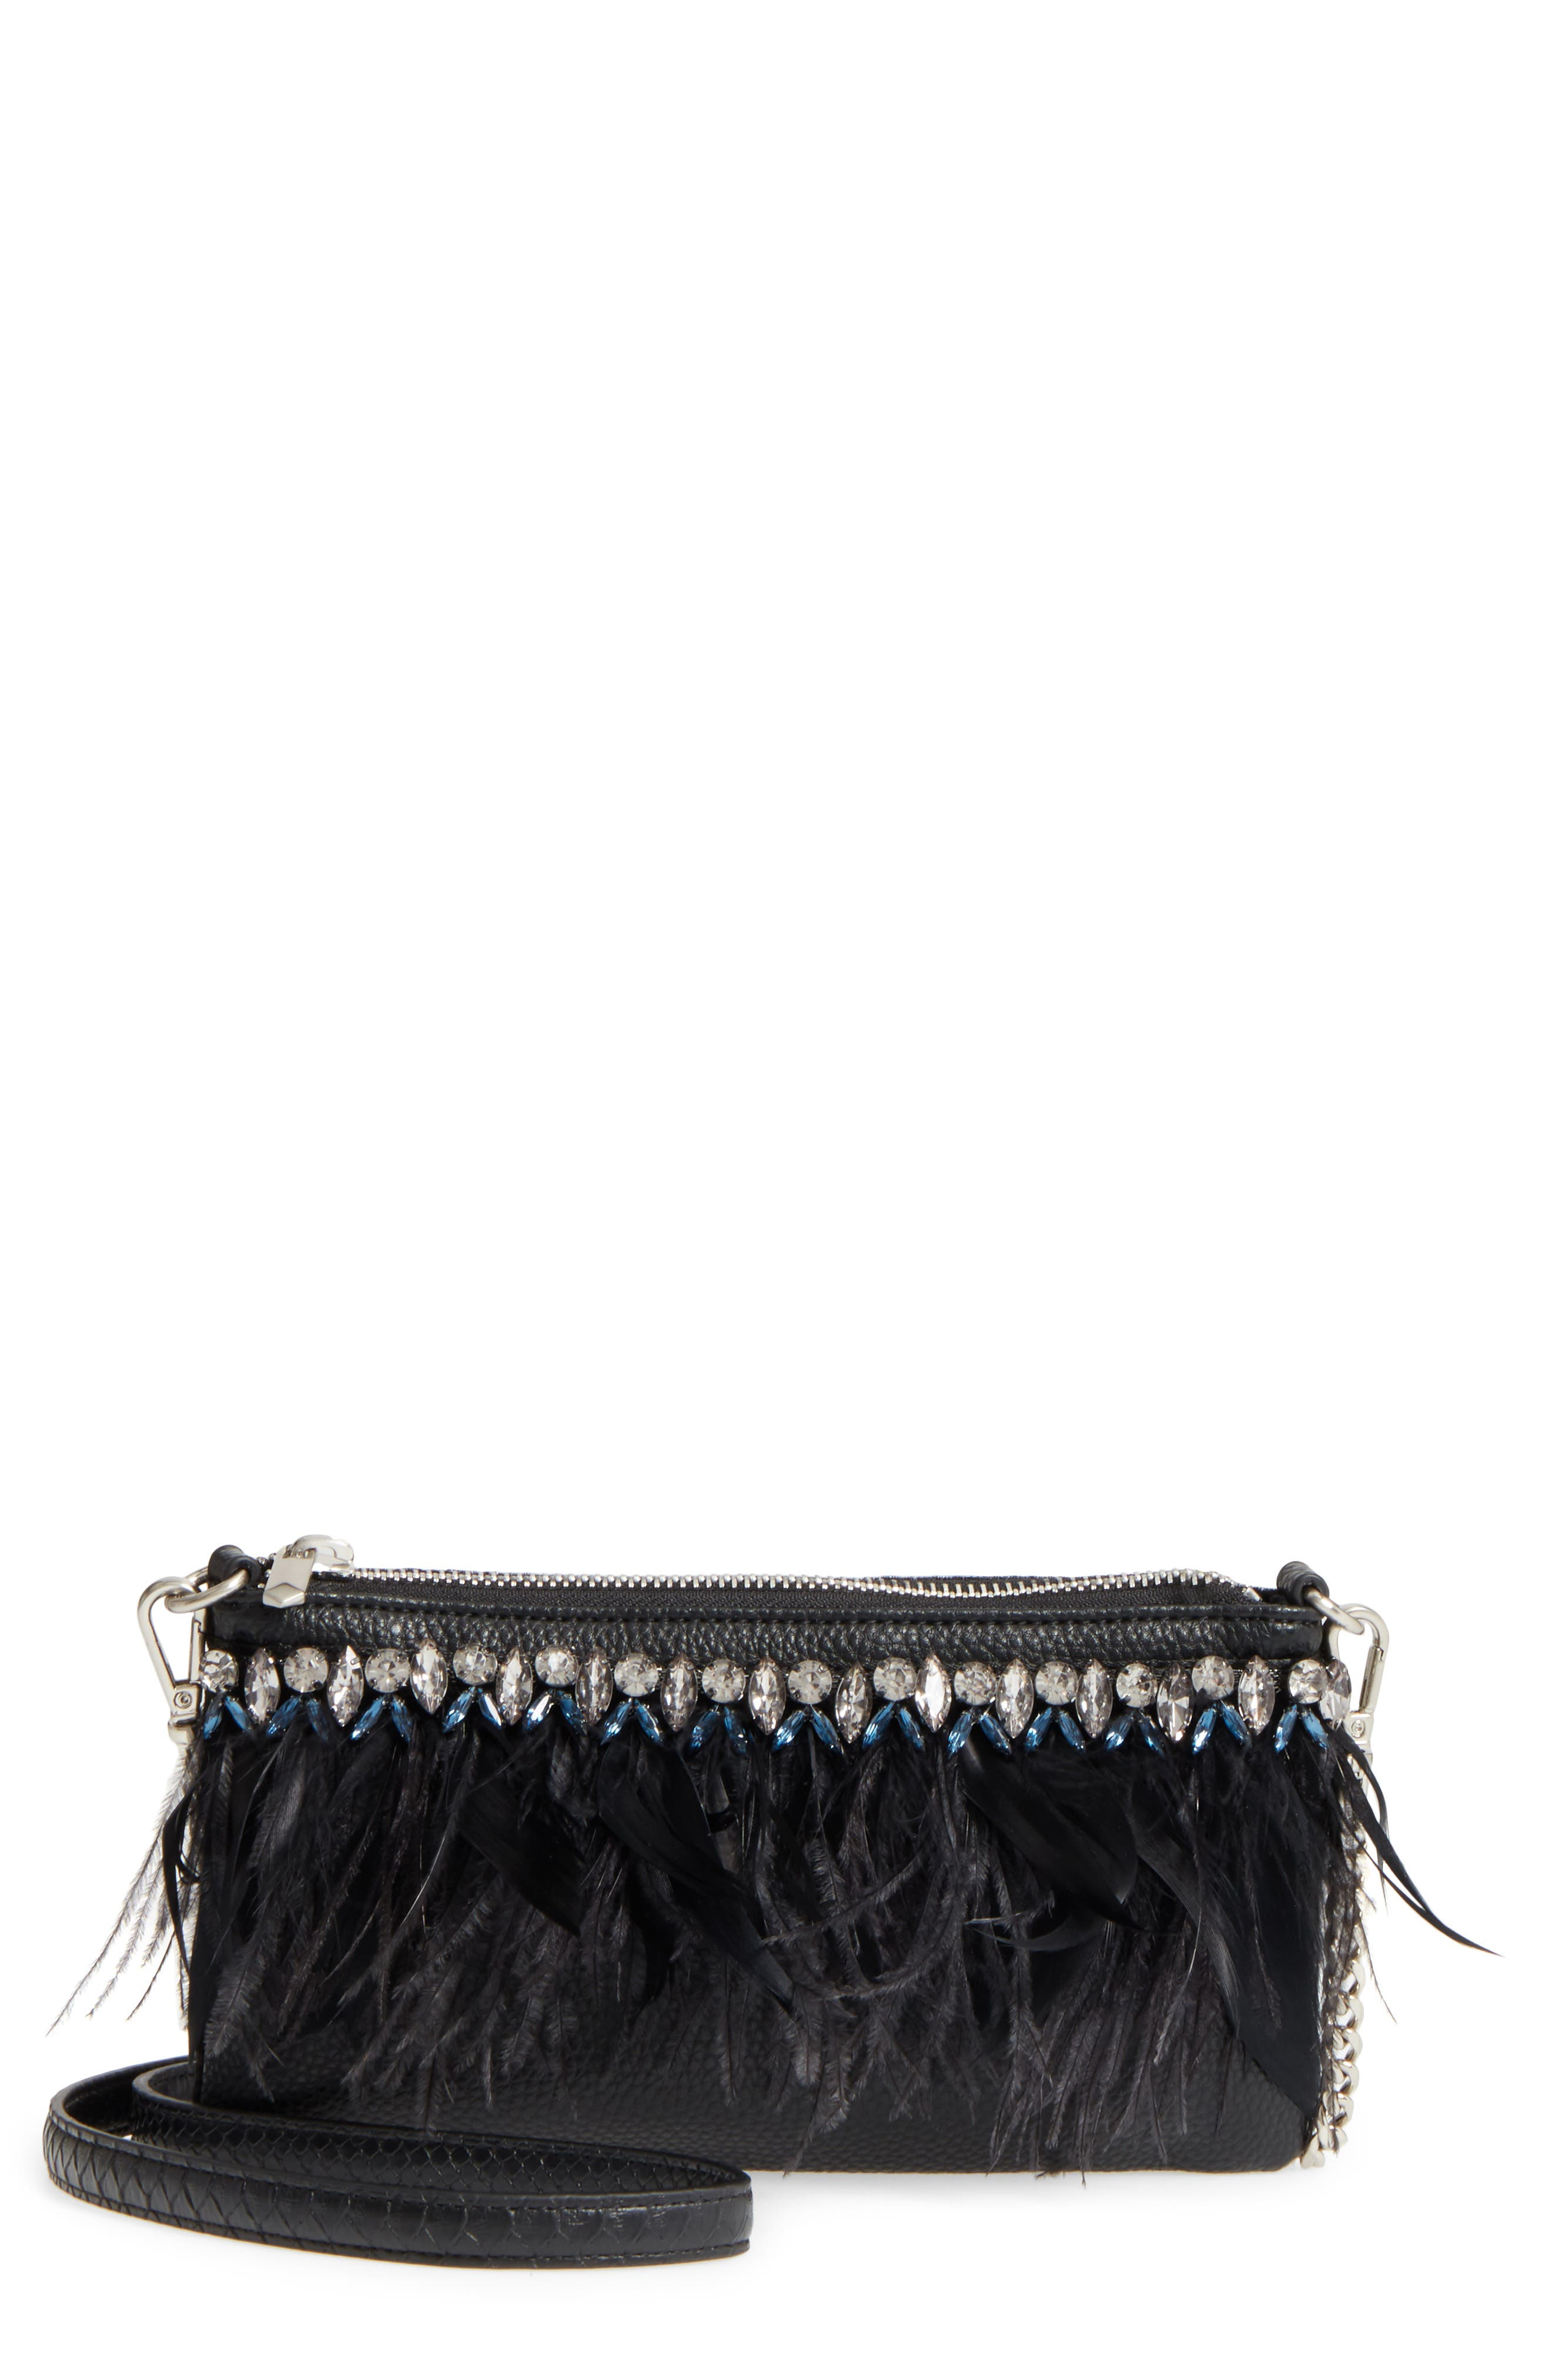 Alternate Image 1 Selected - Sam Edelman Carrina Faux Leather Convertible Clutch